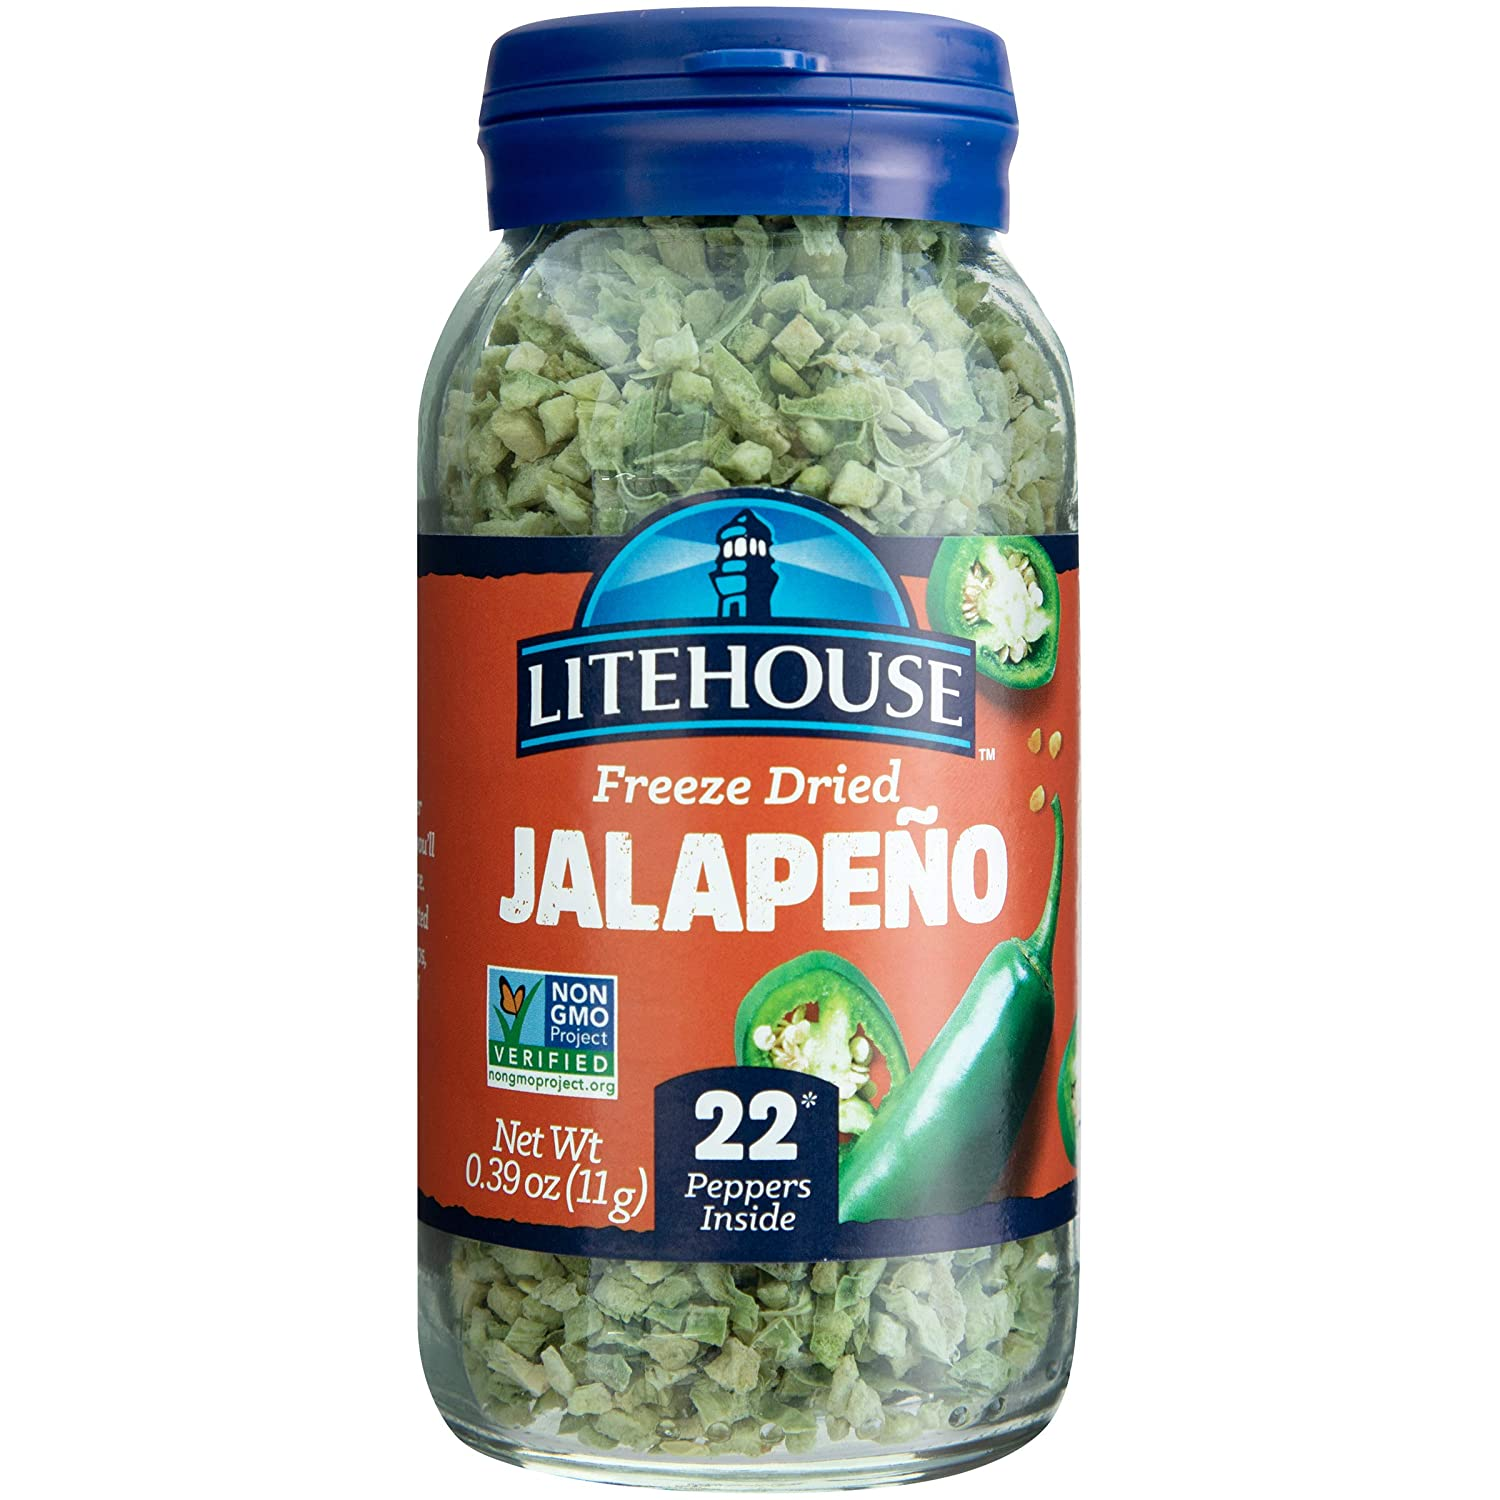 Litehouse Freeze Dried Jalapeno Herb, 0.39 Ounce